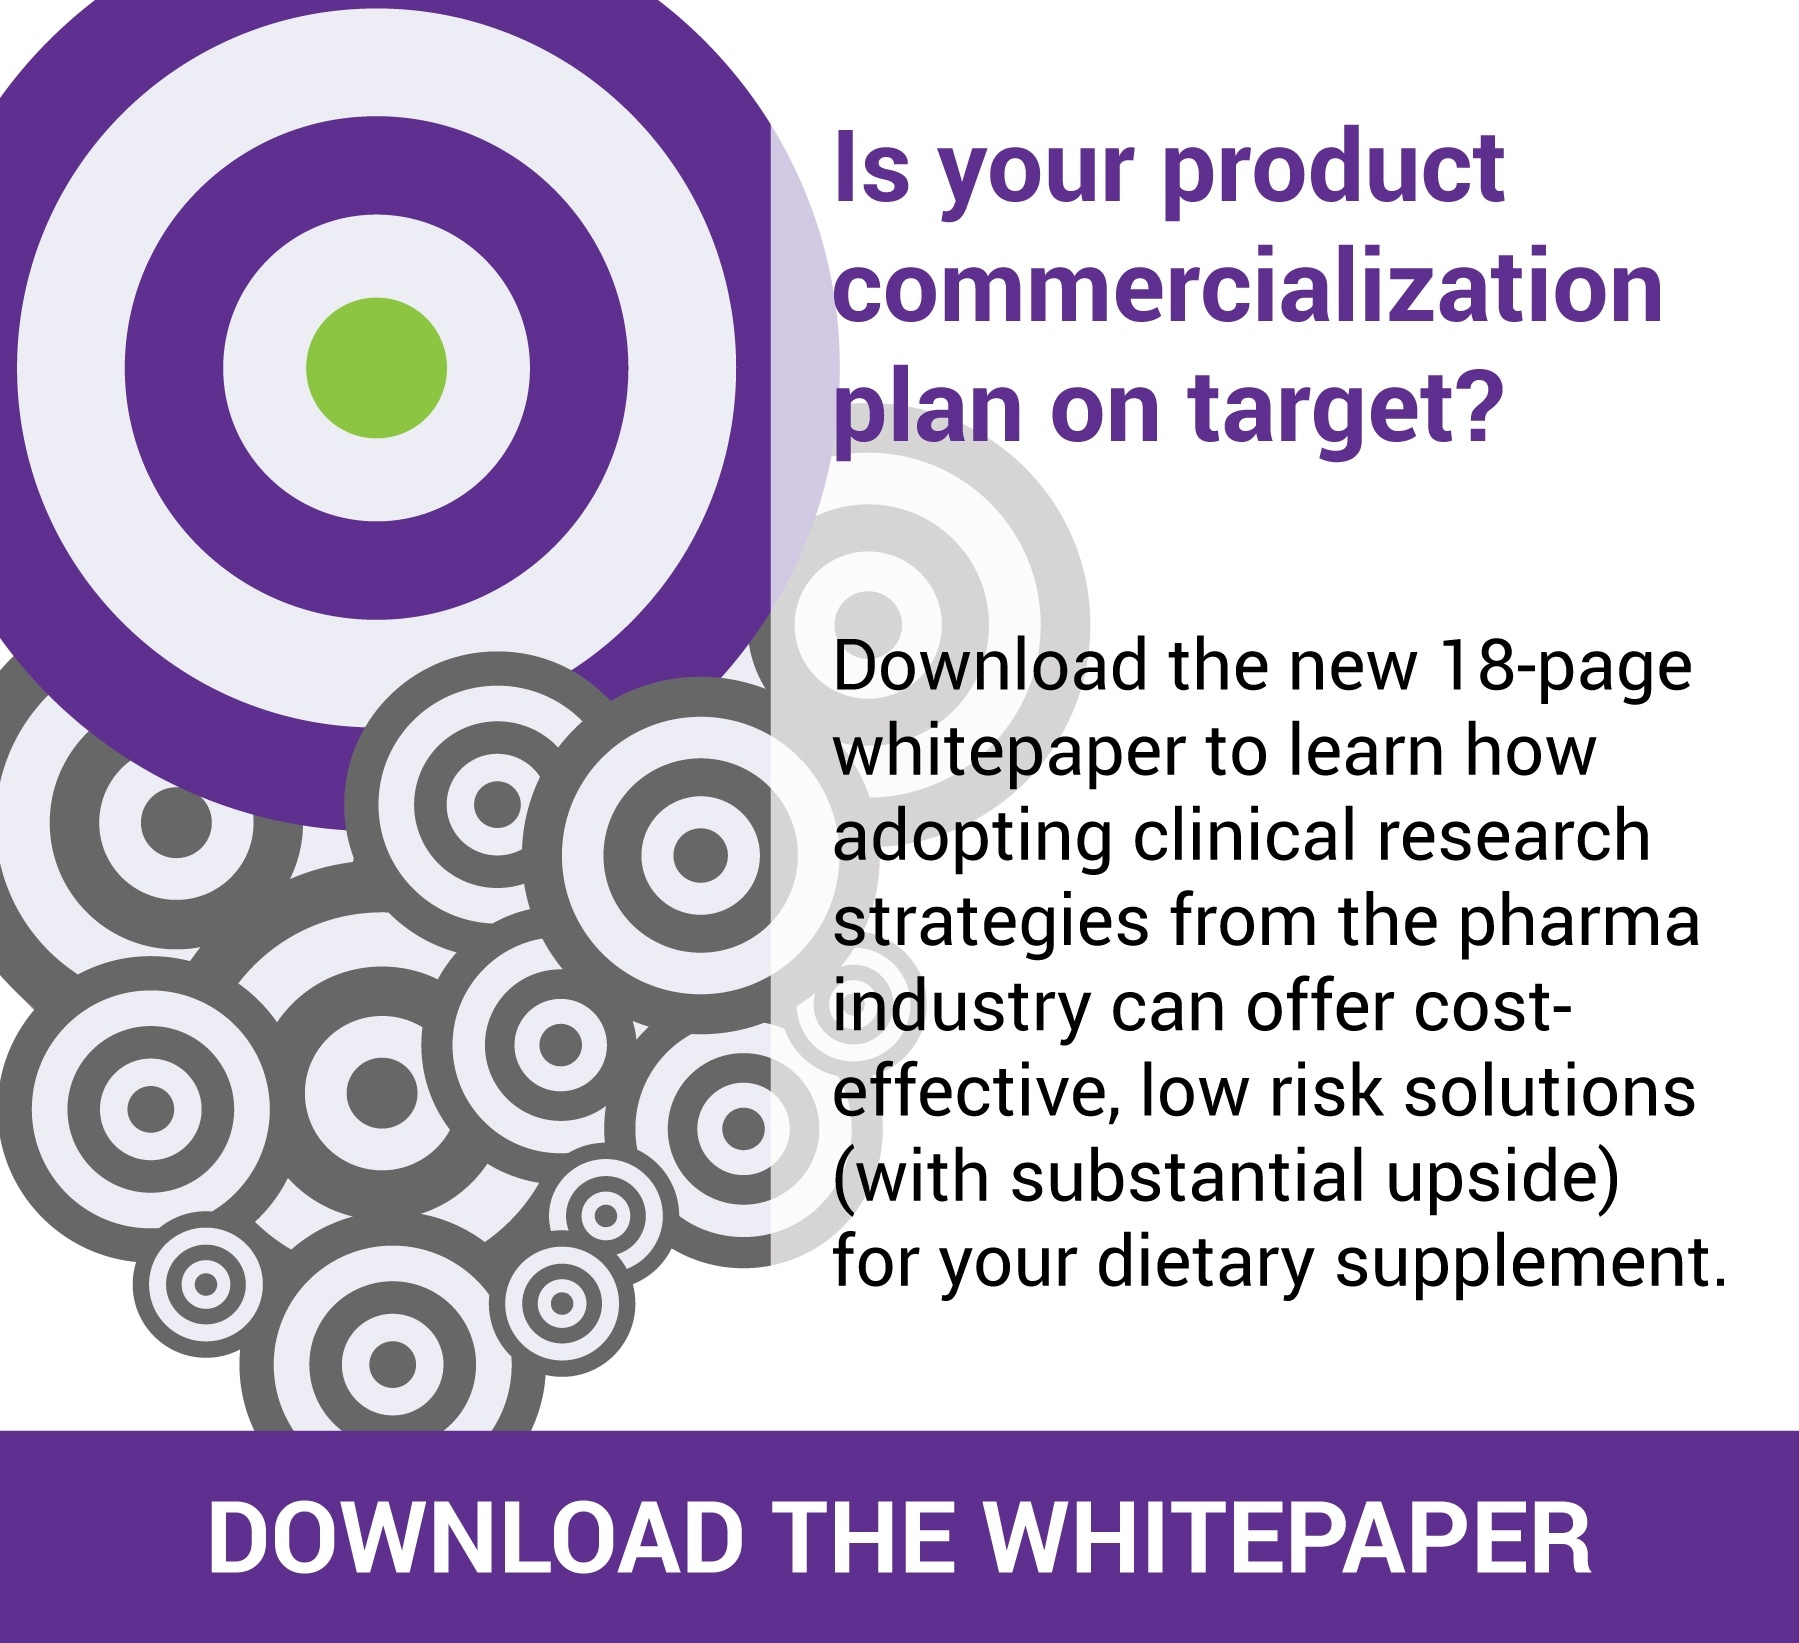 Dietary-supplement-commercialization-whitepaper-2015.jpg